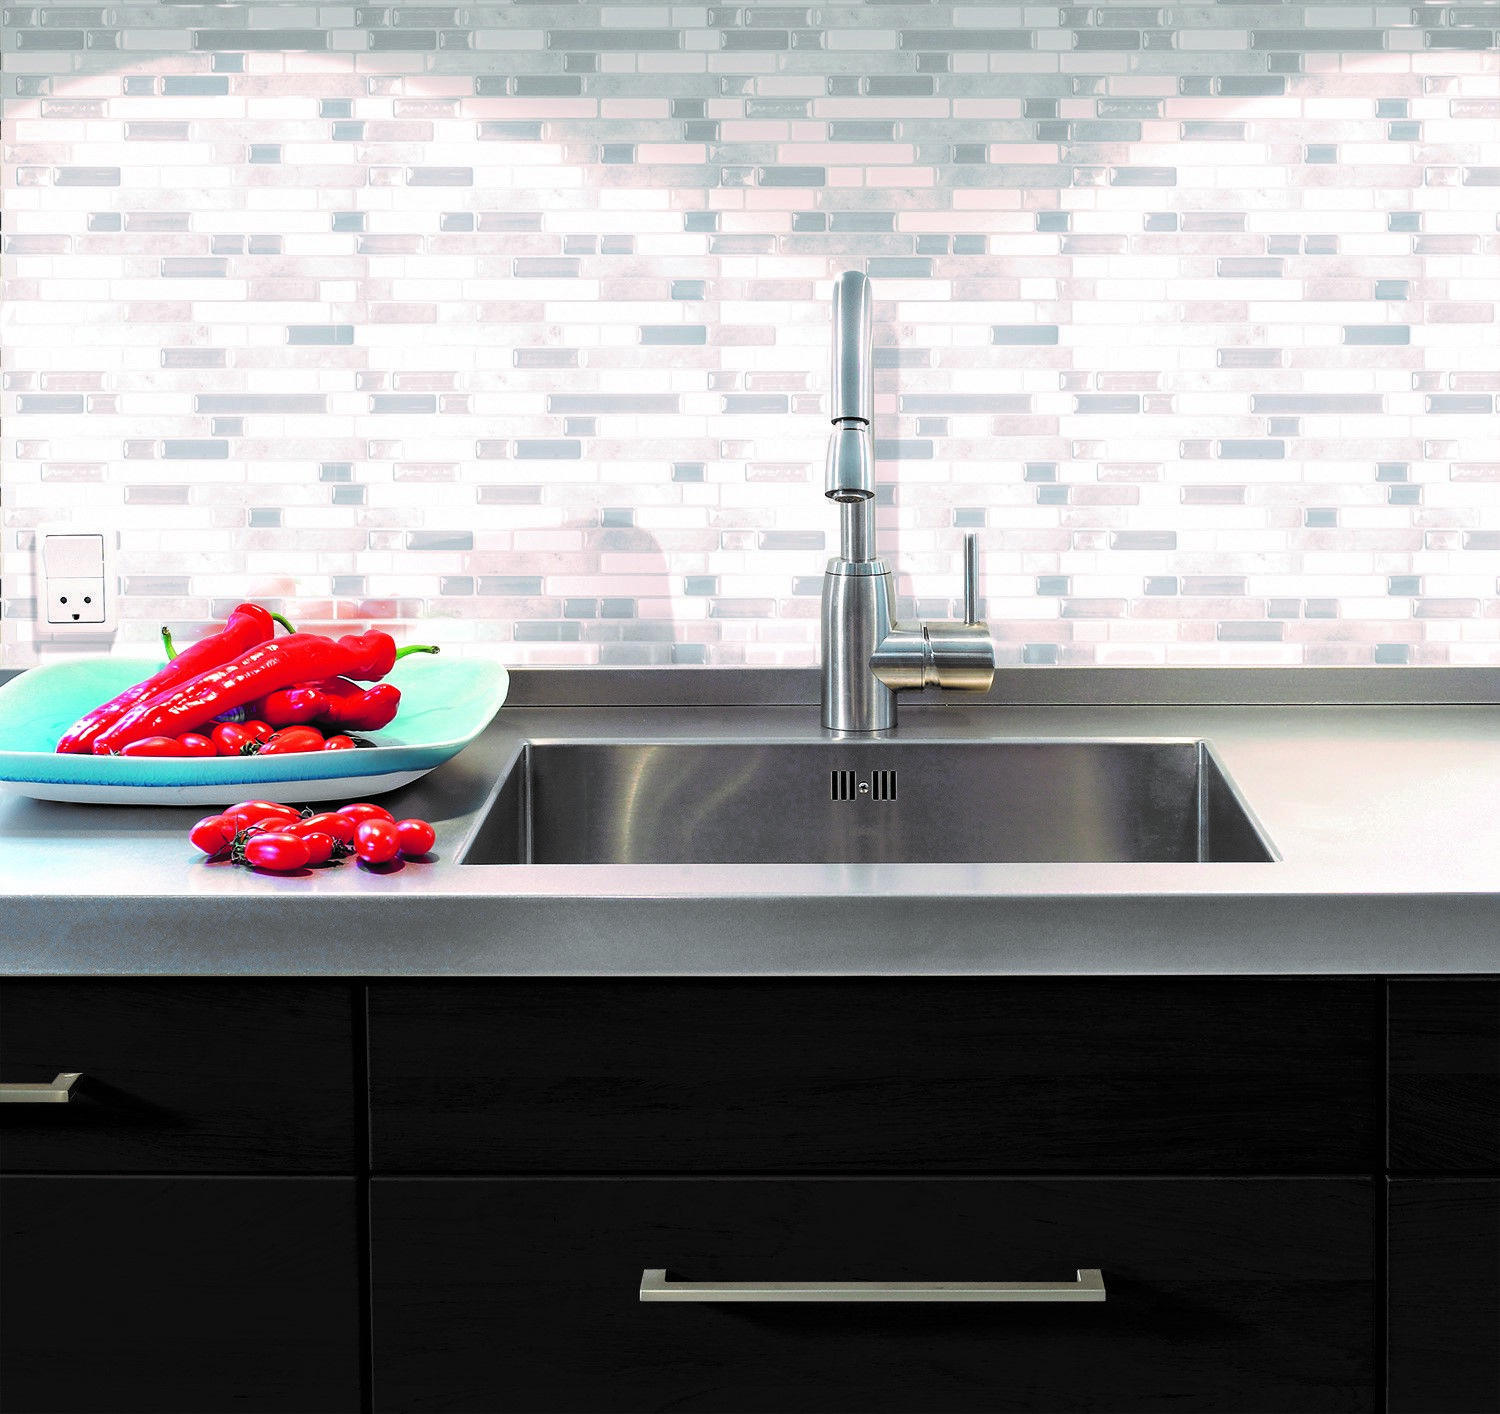 Bellagio blanco peel and stick smart tiles especially designed for smart tiles bellagio blanco 10 in w peel and stick decorative mosaic wall tile backsplash in white and grey box of the home depot dailygadgetfo Choice Image